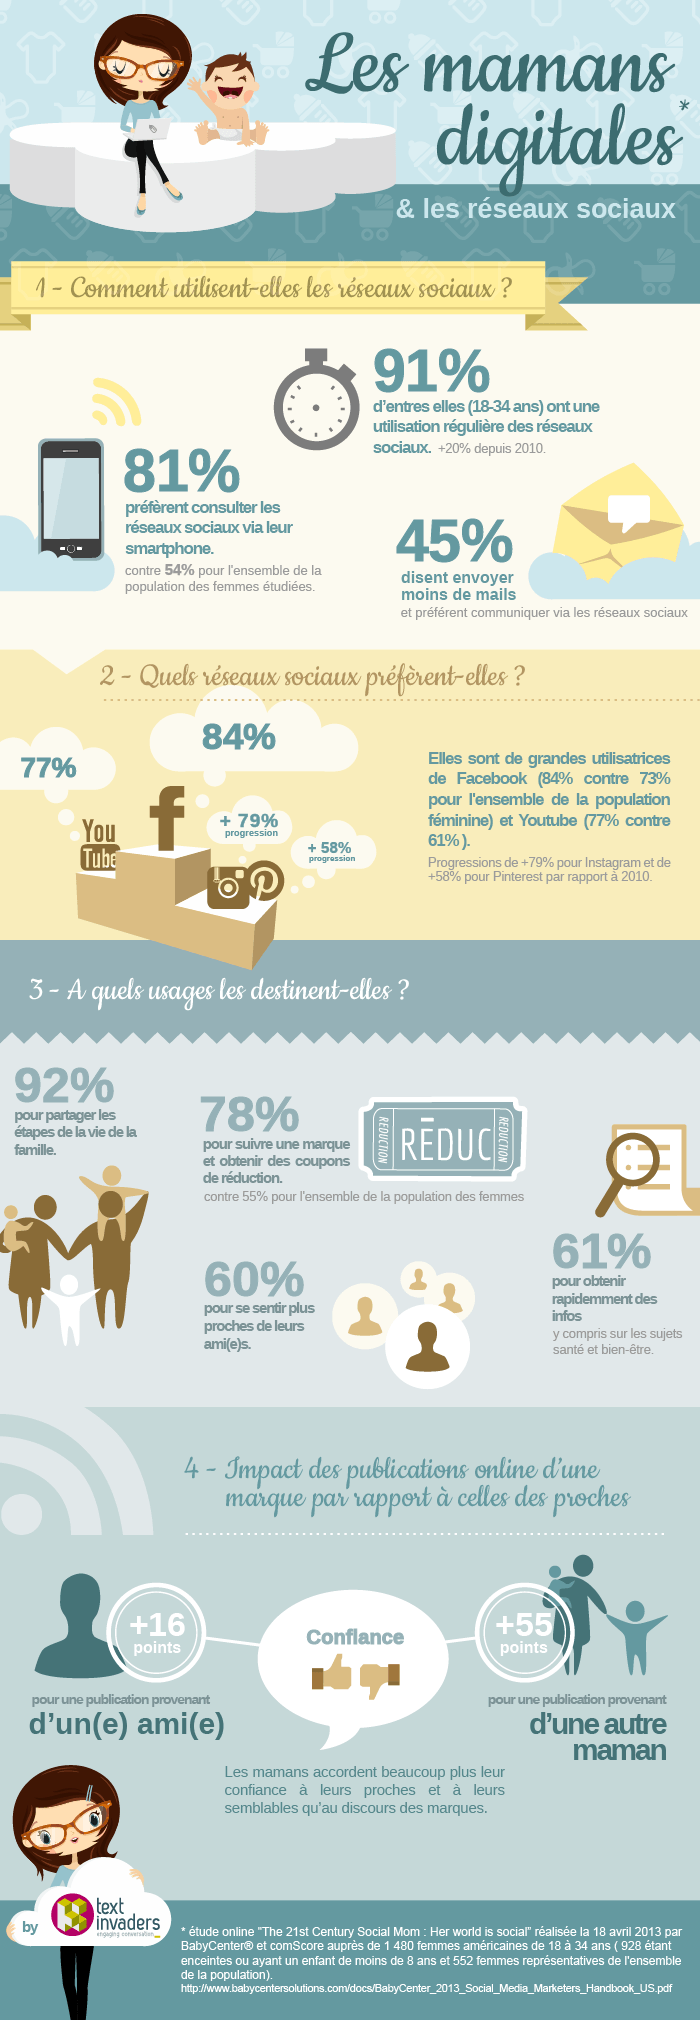 infographie mamans digitales statistiques